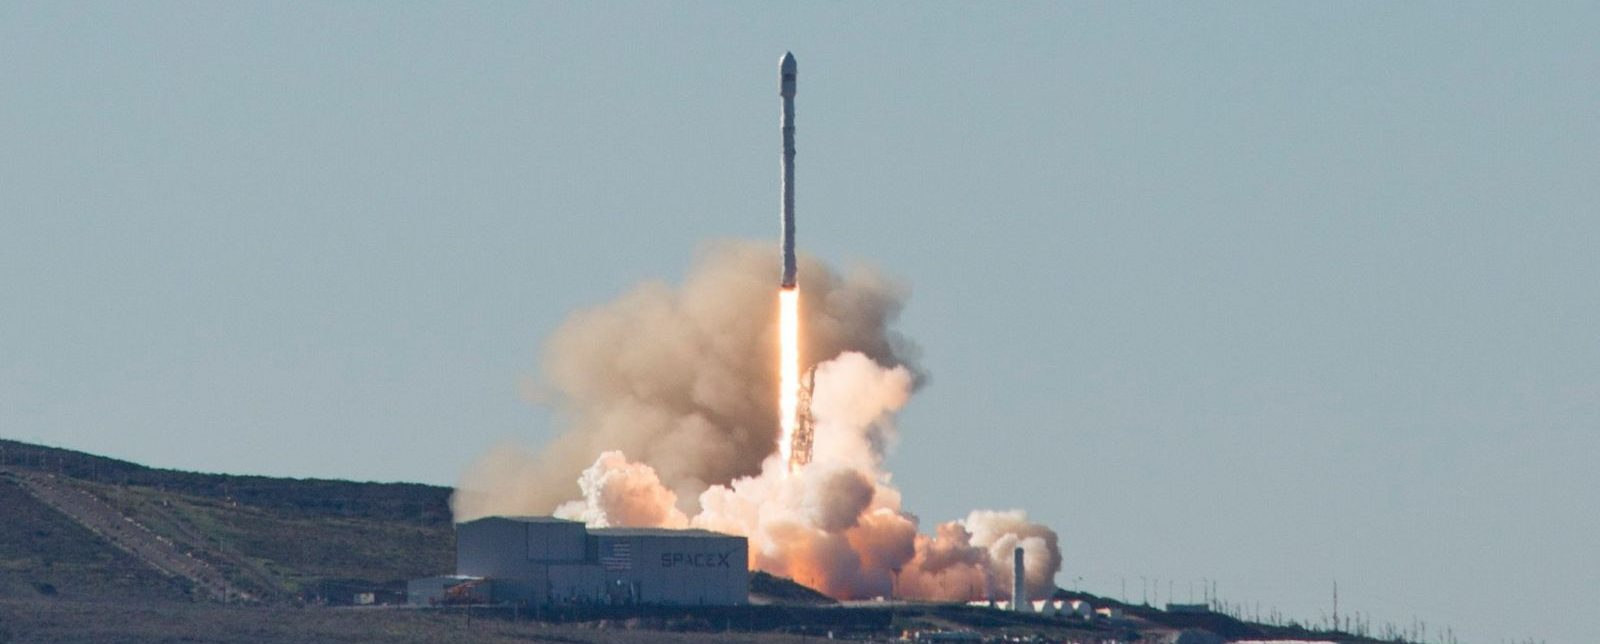 File photo of the Iridium-1 launch in January 2017. The Iridium-2 launch took place at 1:25 p.m. PDT (4:25 EDT / 20:25 GMT) June 25, 2017. Photo Credit: SpaceX